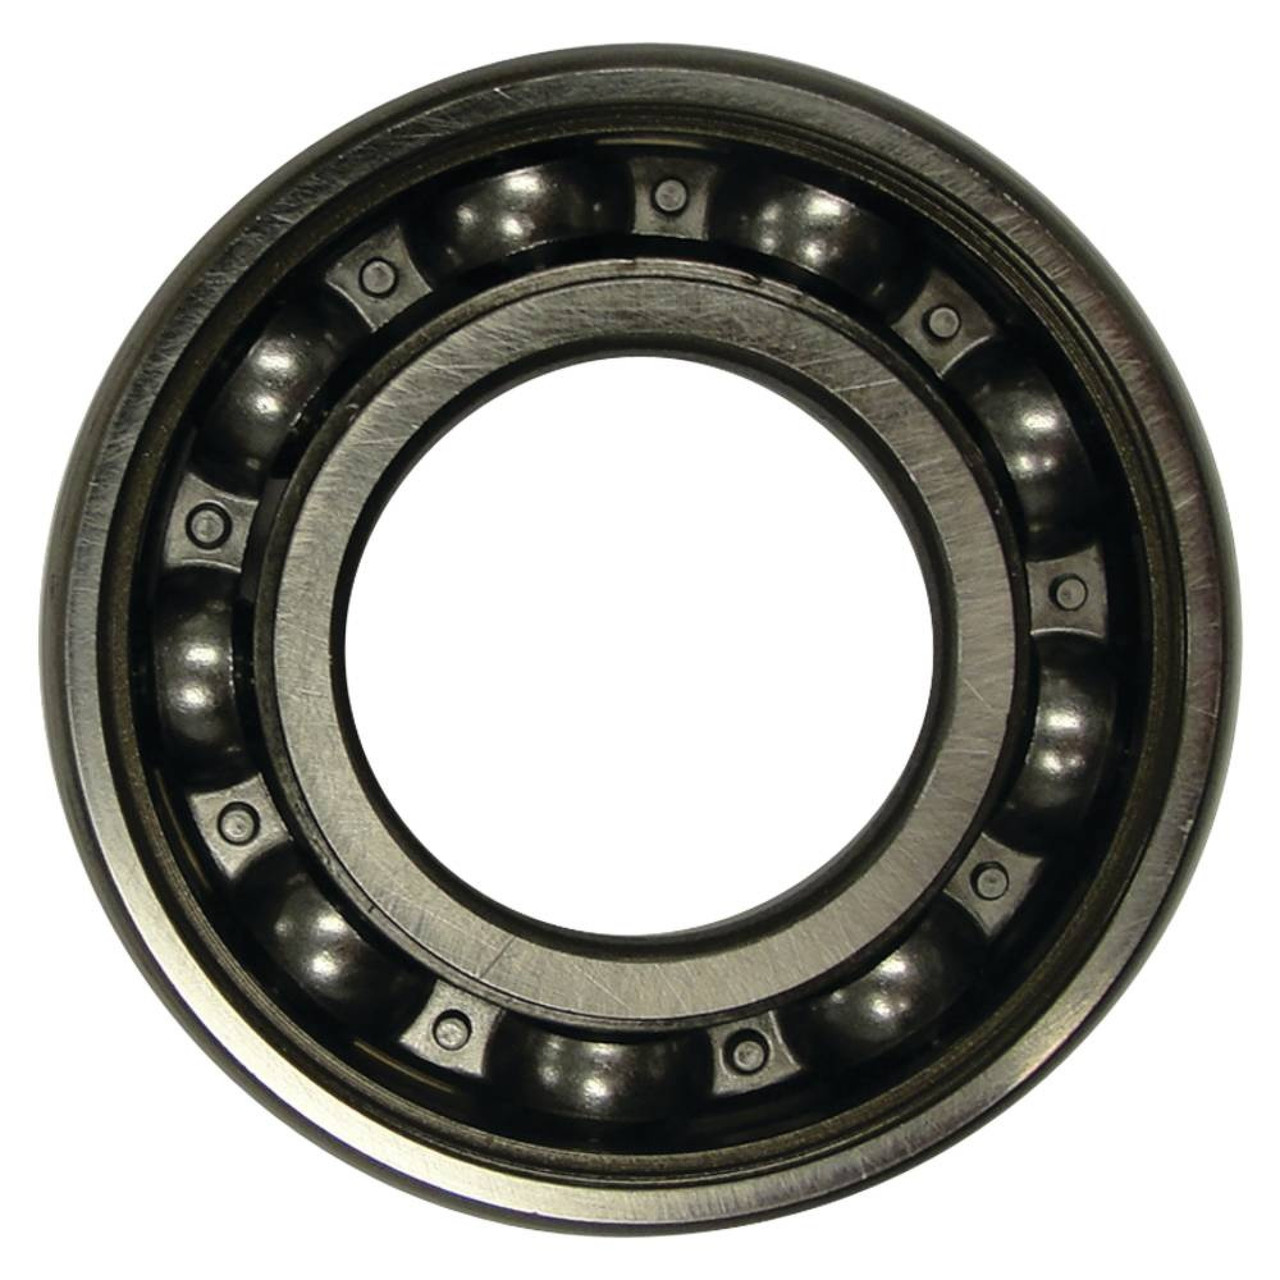 NEW Wheel Bearing for Kubota Lawn Tractor Mower 08101-06205